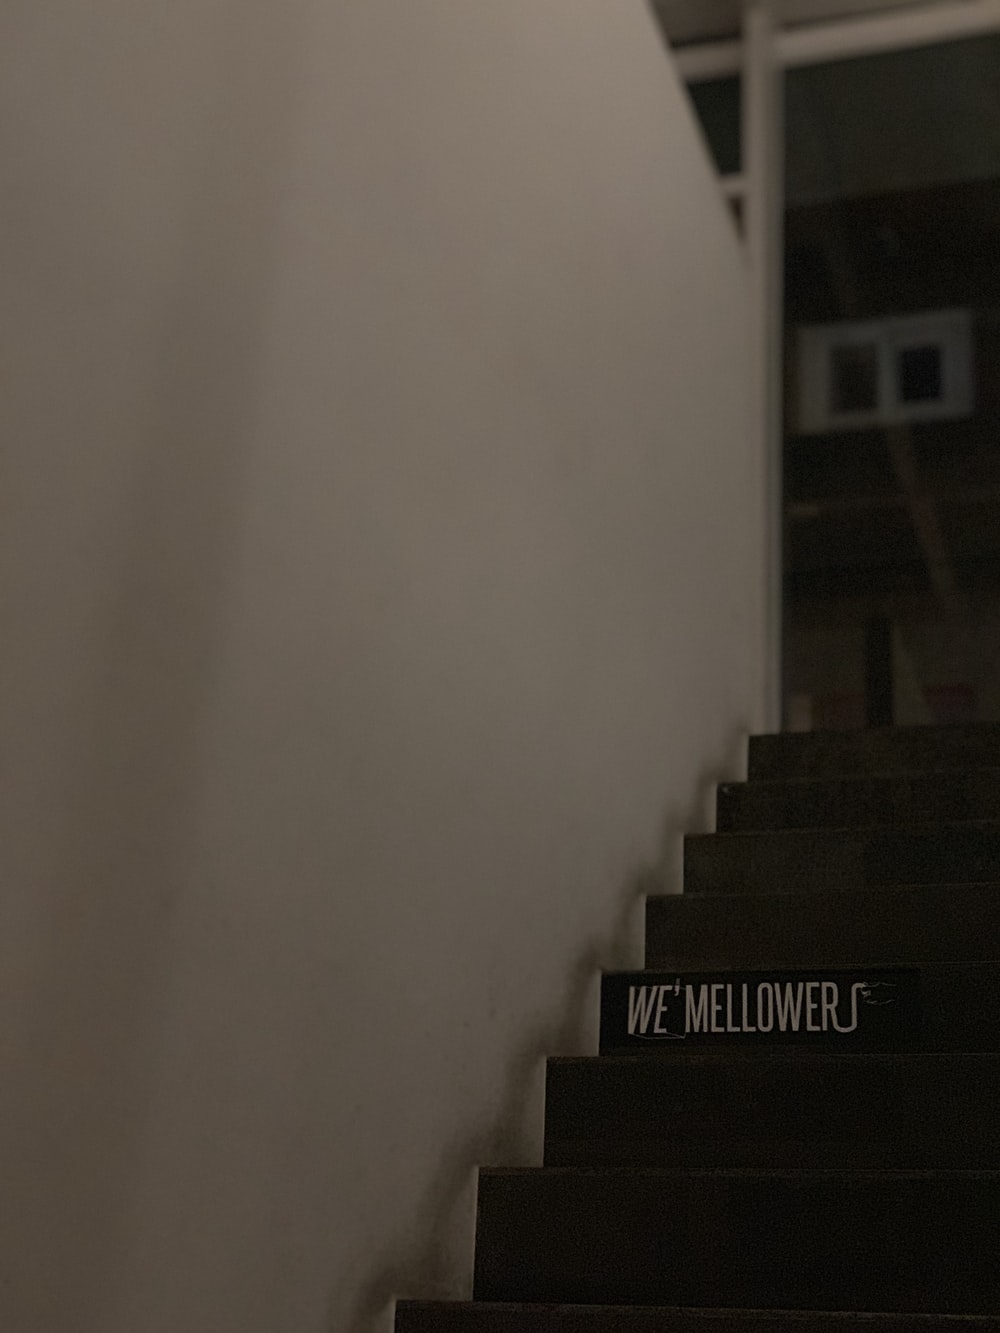 we mellowers print on stairs inside room